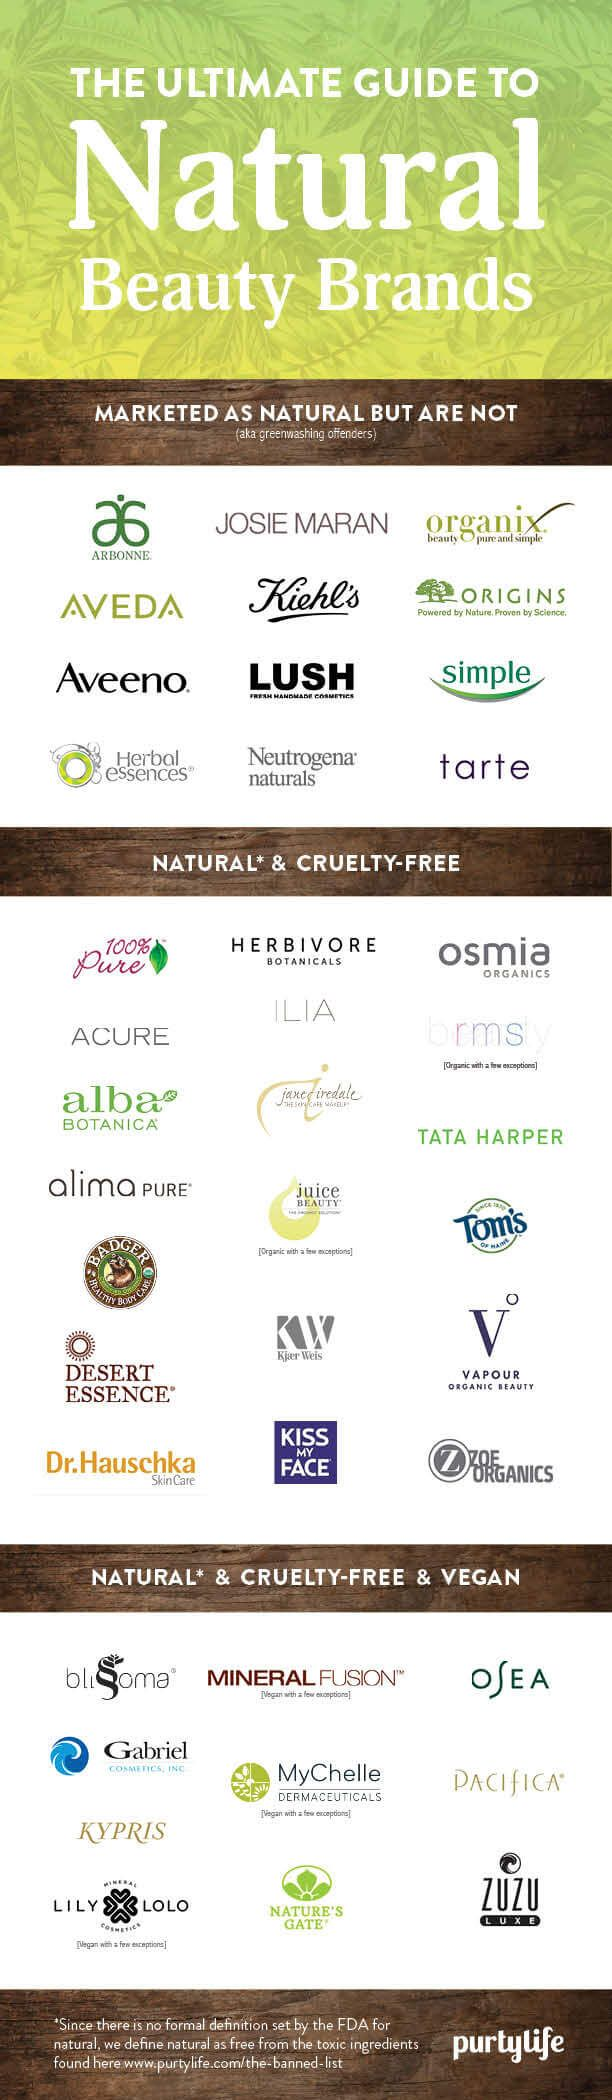 The Ultimate Guide to the Natural, Organic and Vegan Beauty Brands Discover Non-Toxic, Chemical-Free Makeup & Skincare https://www.purtylife.com/the-banned-list